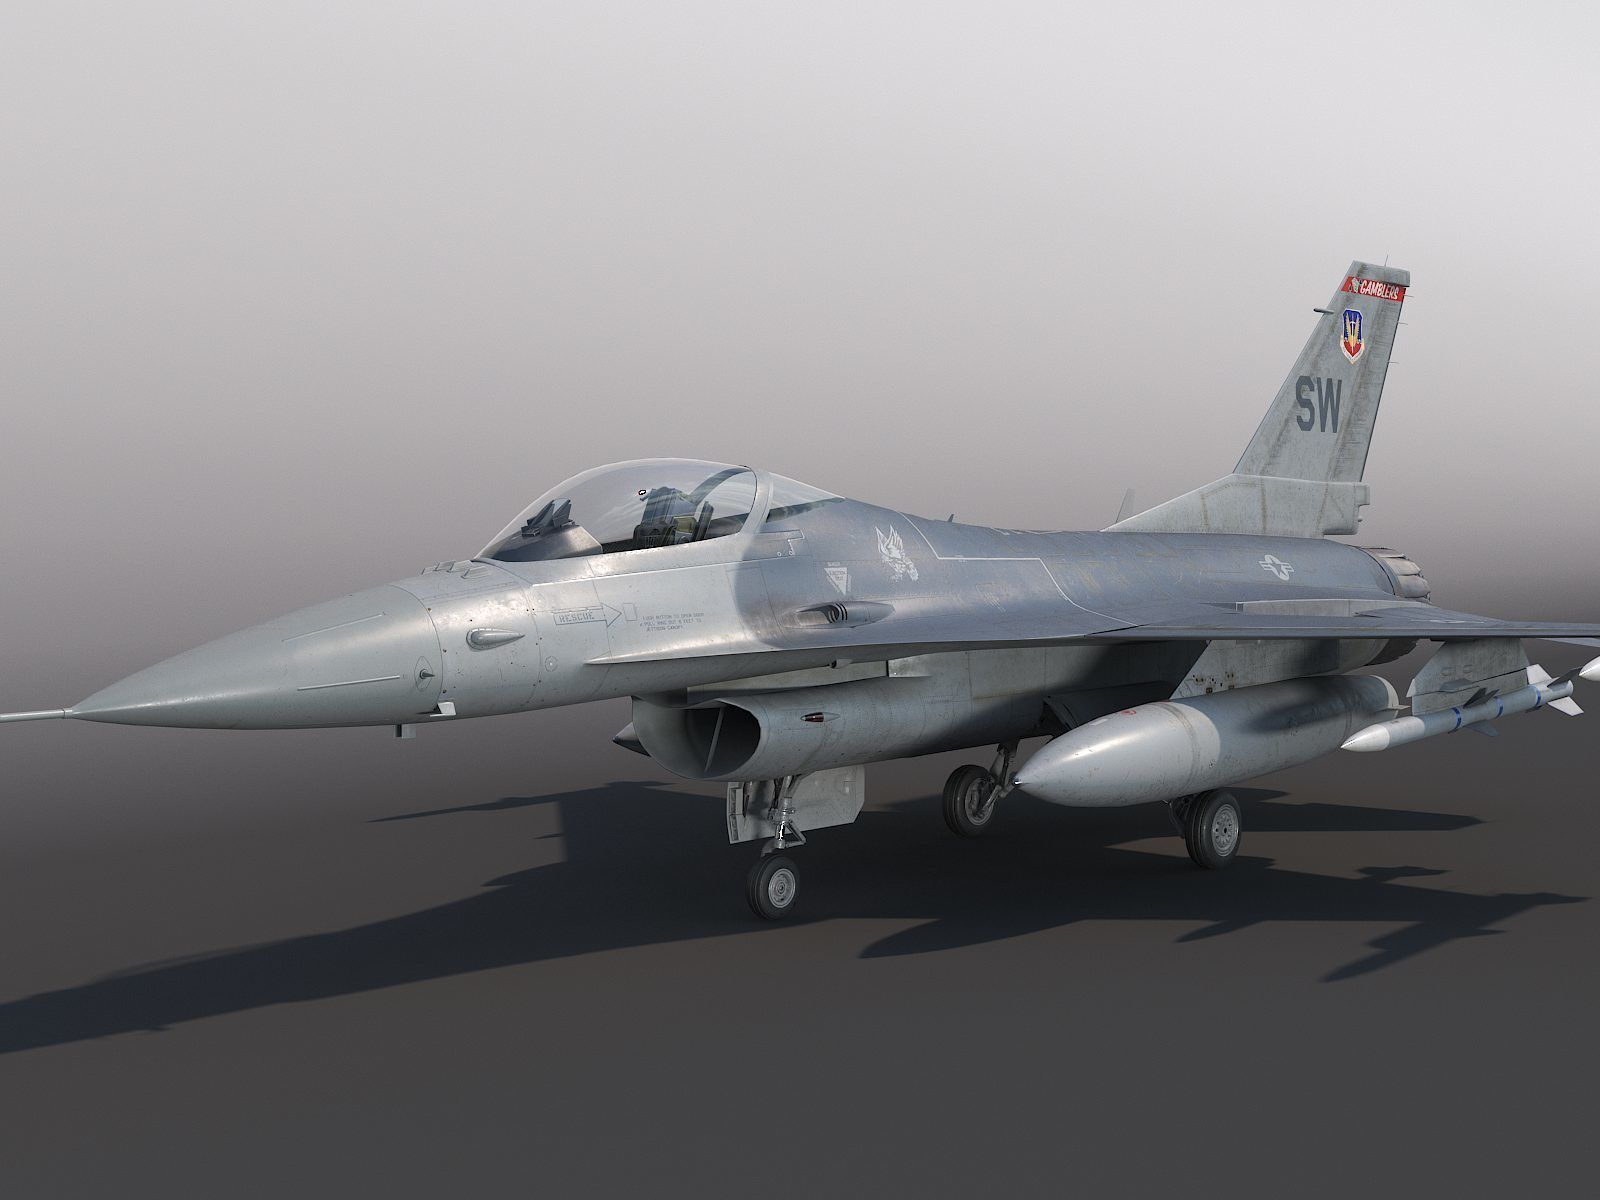 General Dynamics F-16 Fighting Falcon rigged